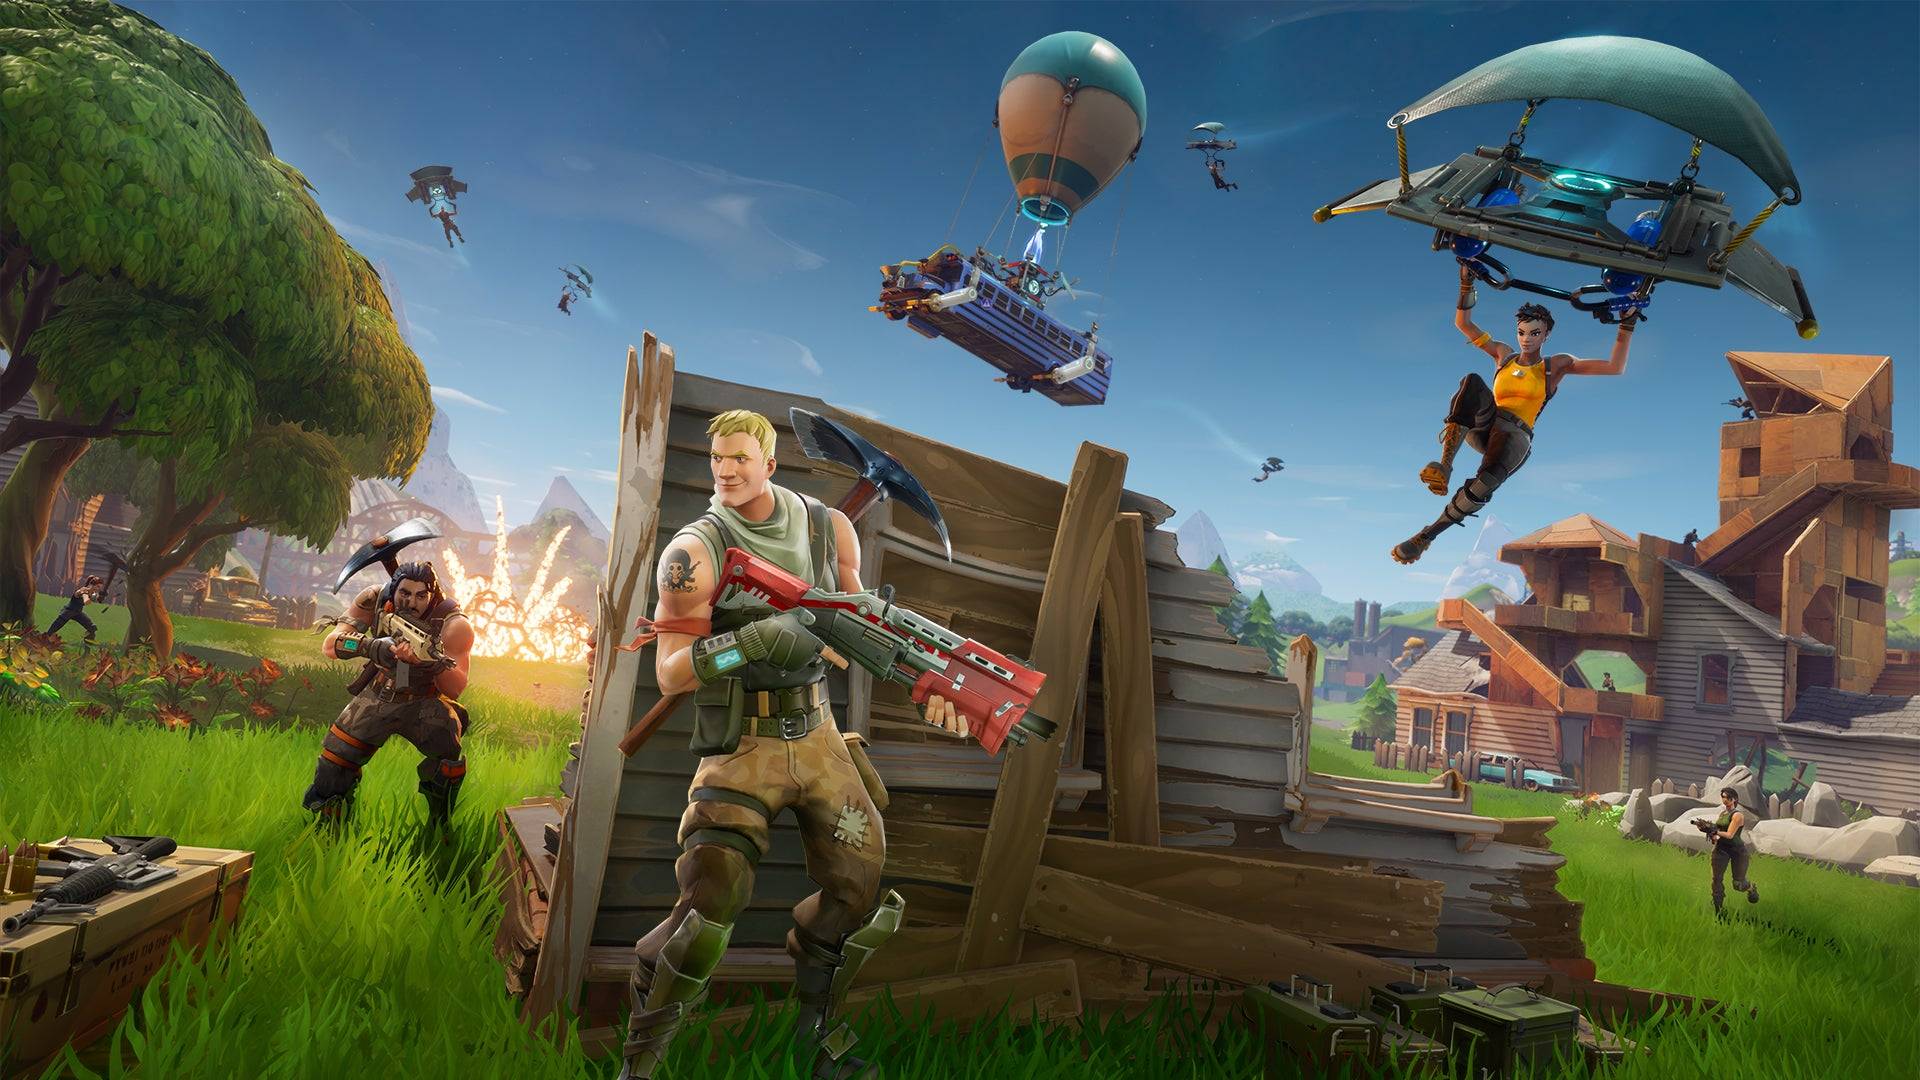 Epic sues 14-year-old cheater, and the mother responds